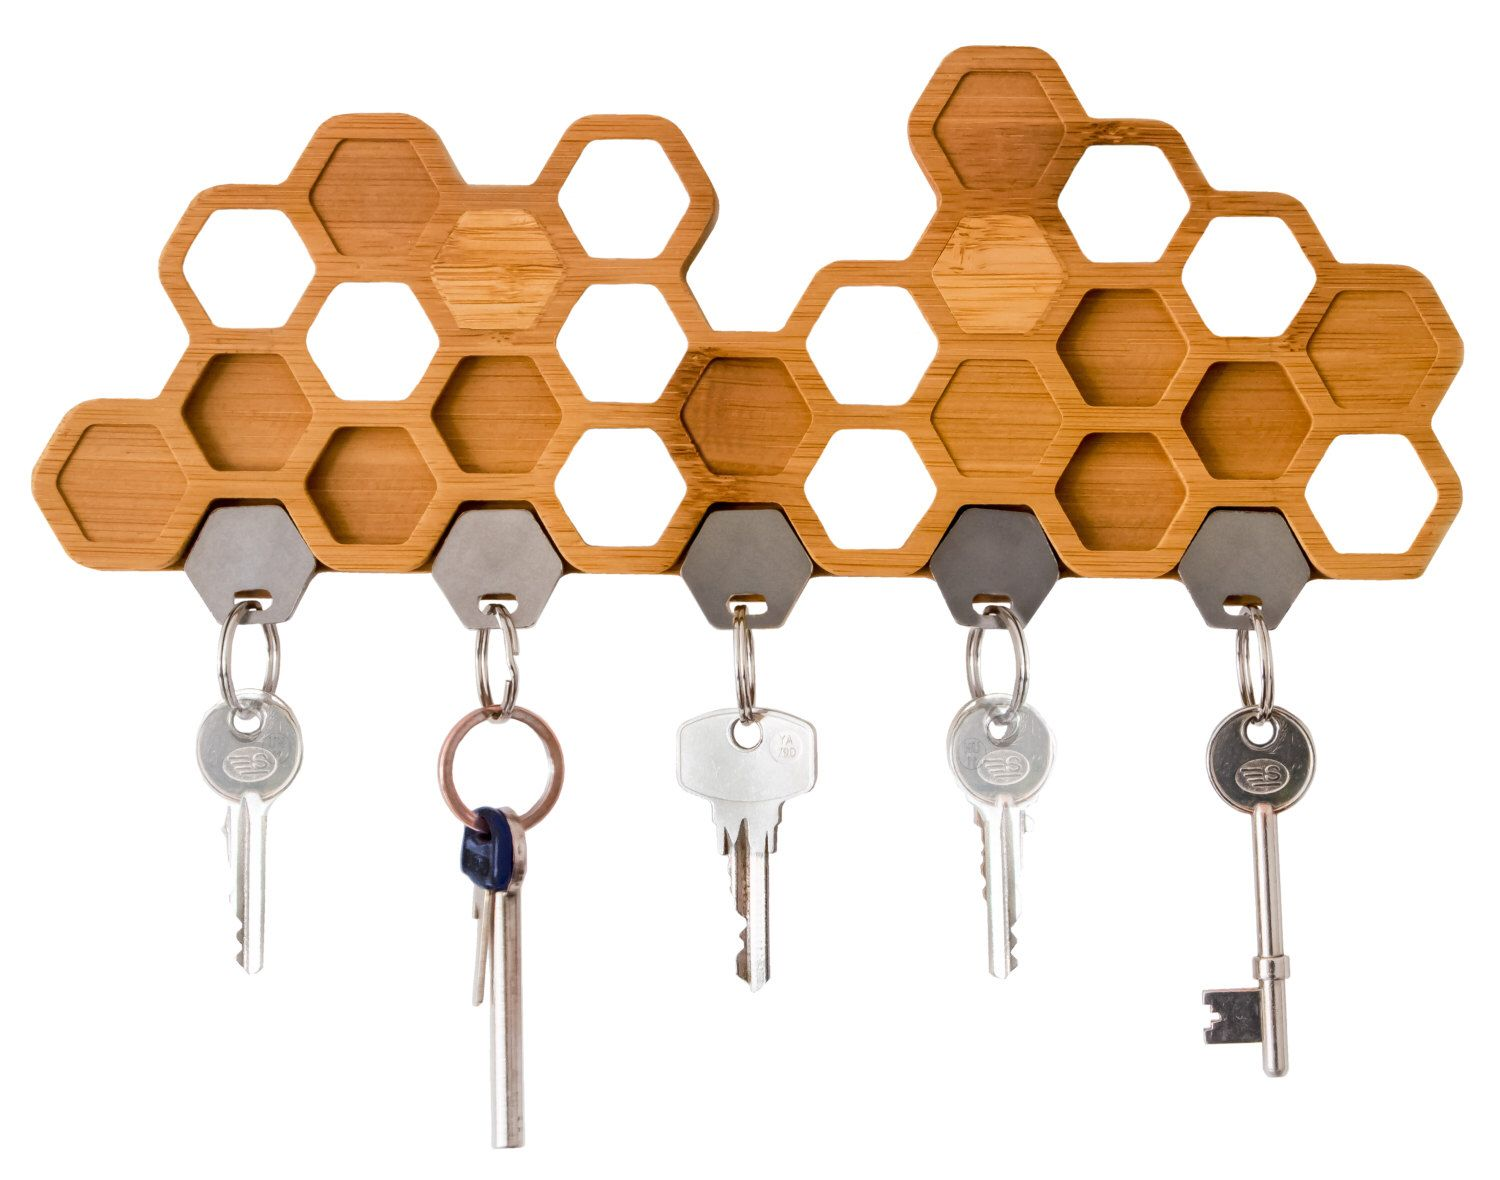 Delightful Honeycomb Magnetic Key Holder   A Unique Bamboo Wall Mounted And Decorative  Wooden Storage Rack By